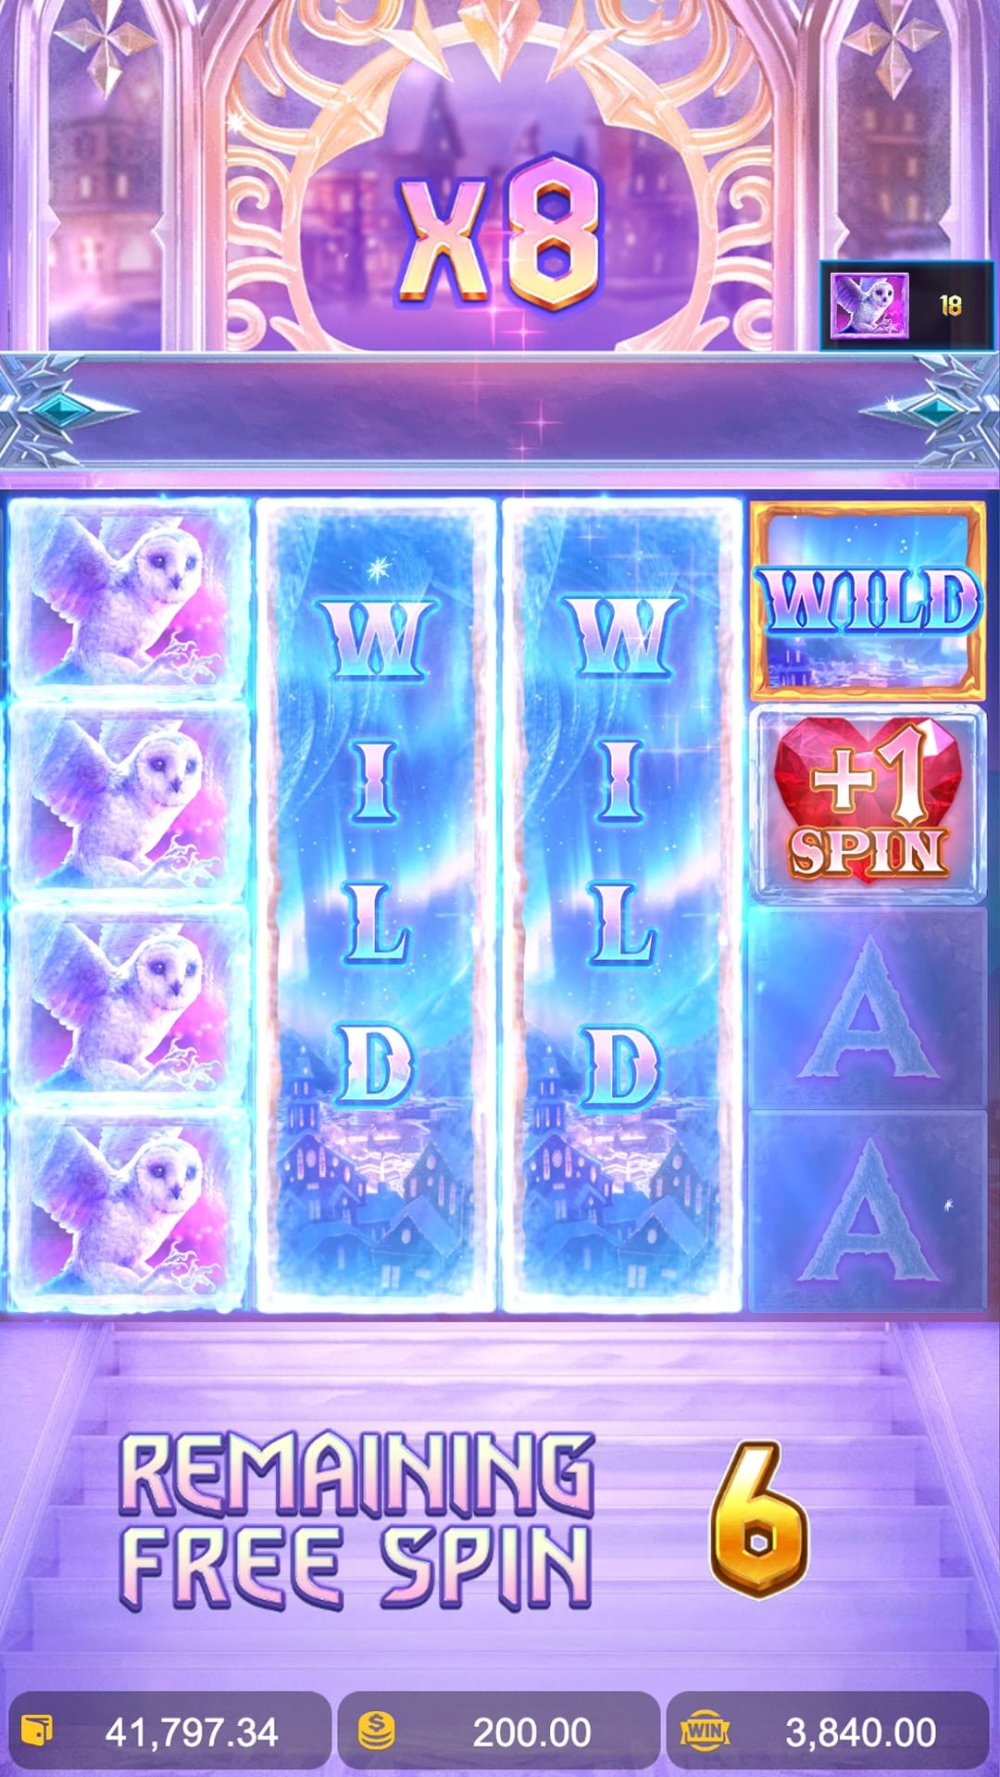 jack frosts winter infinity reels slot by pg soft